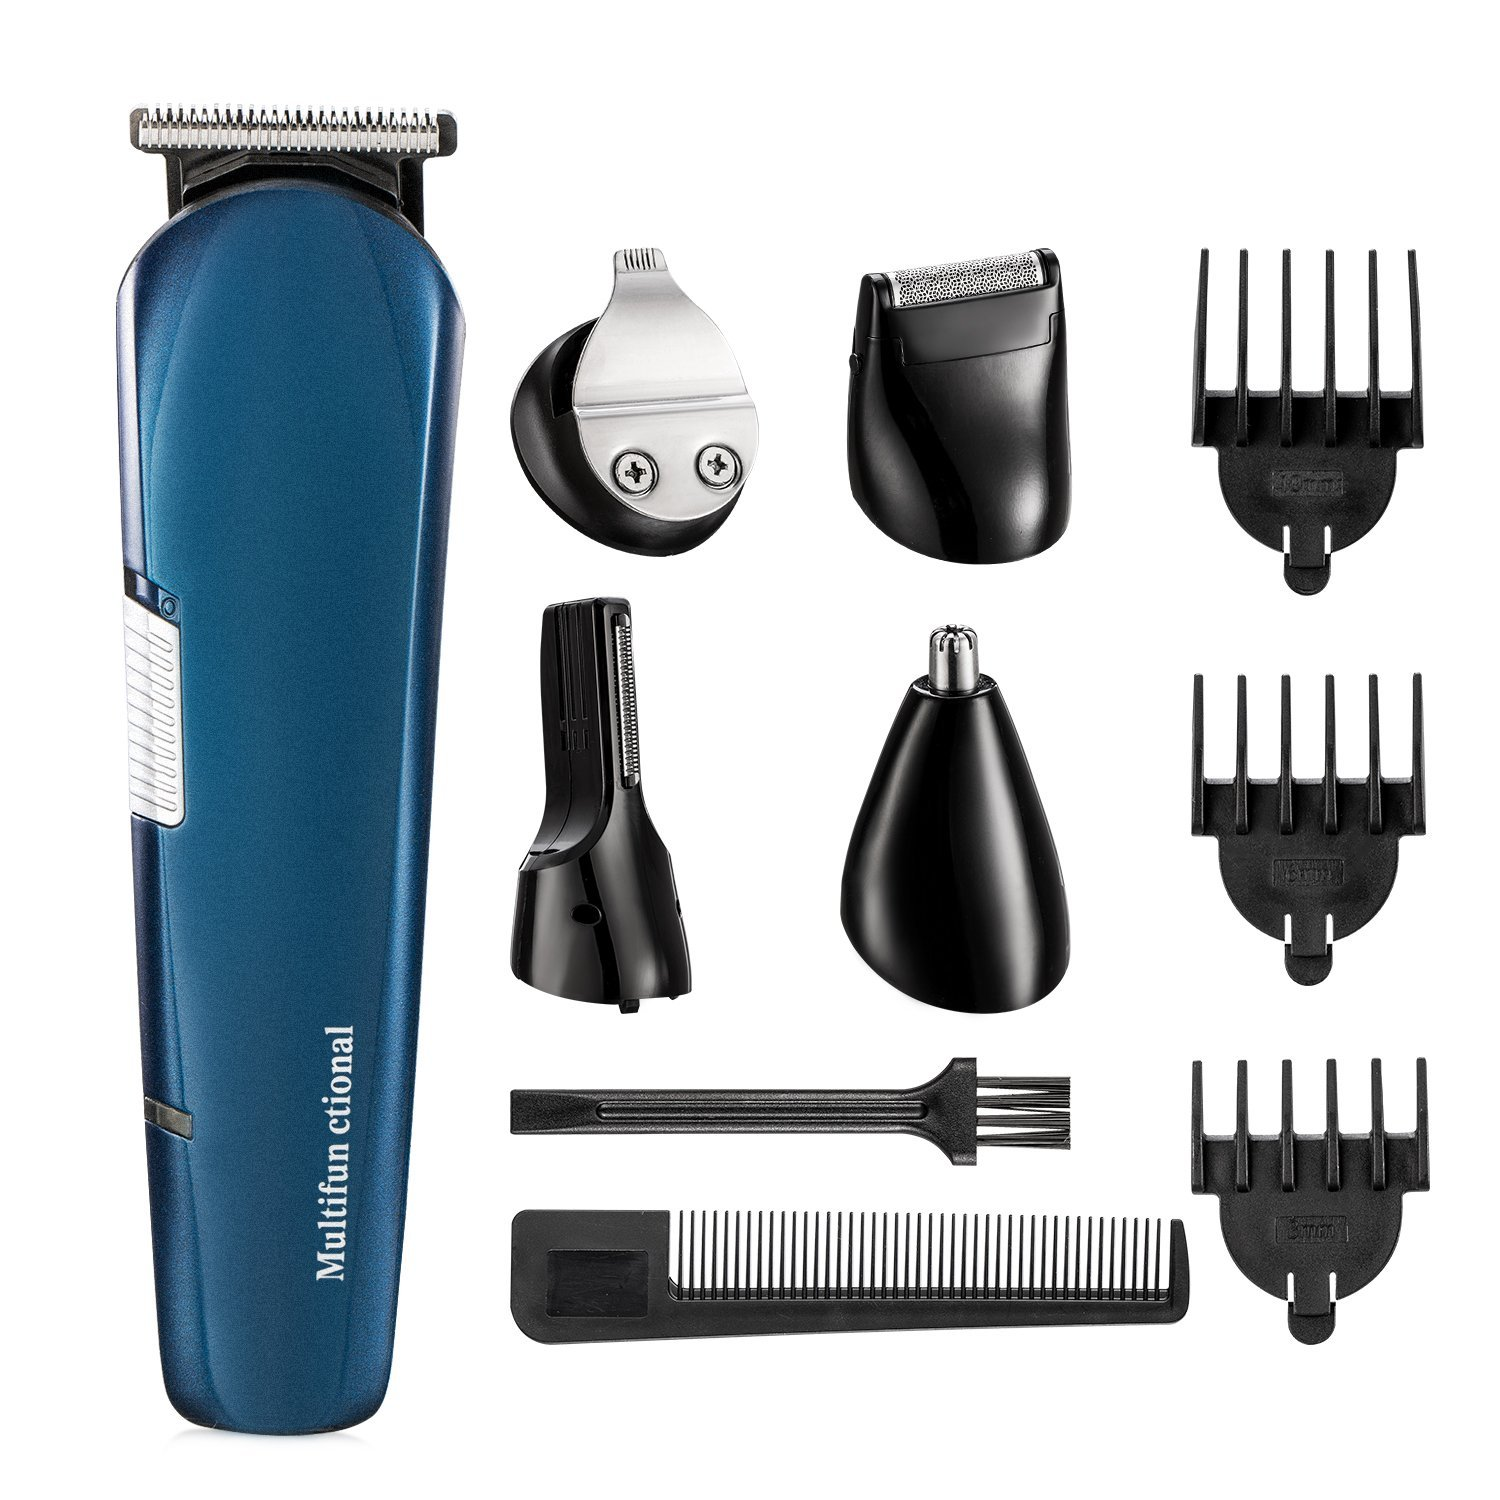 Beard Trimmer,ISIX Hair Clipper, 5 in 1 Lithium Powered Grooming Kit, Multigroom All-In-One Series of Mustache Trimmer, Eyebrow Razor , Nose Hair Trimmer and Precision Trimmer, Rechargeable and Cordle